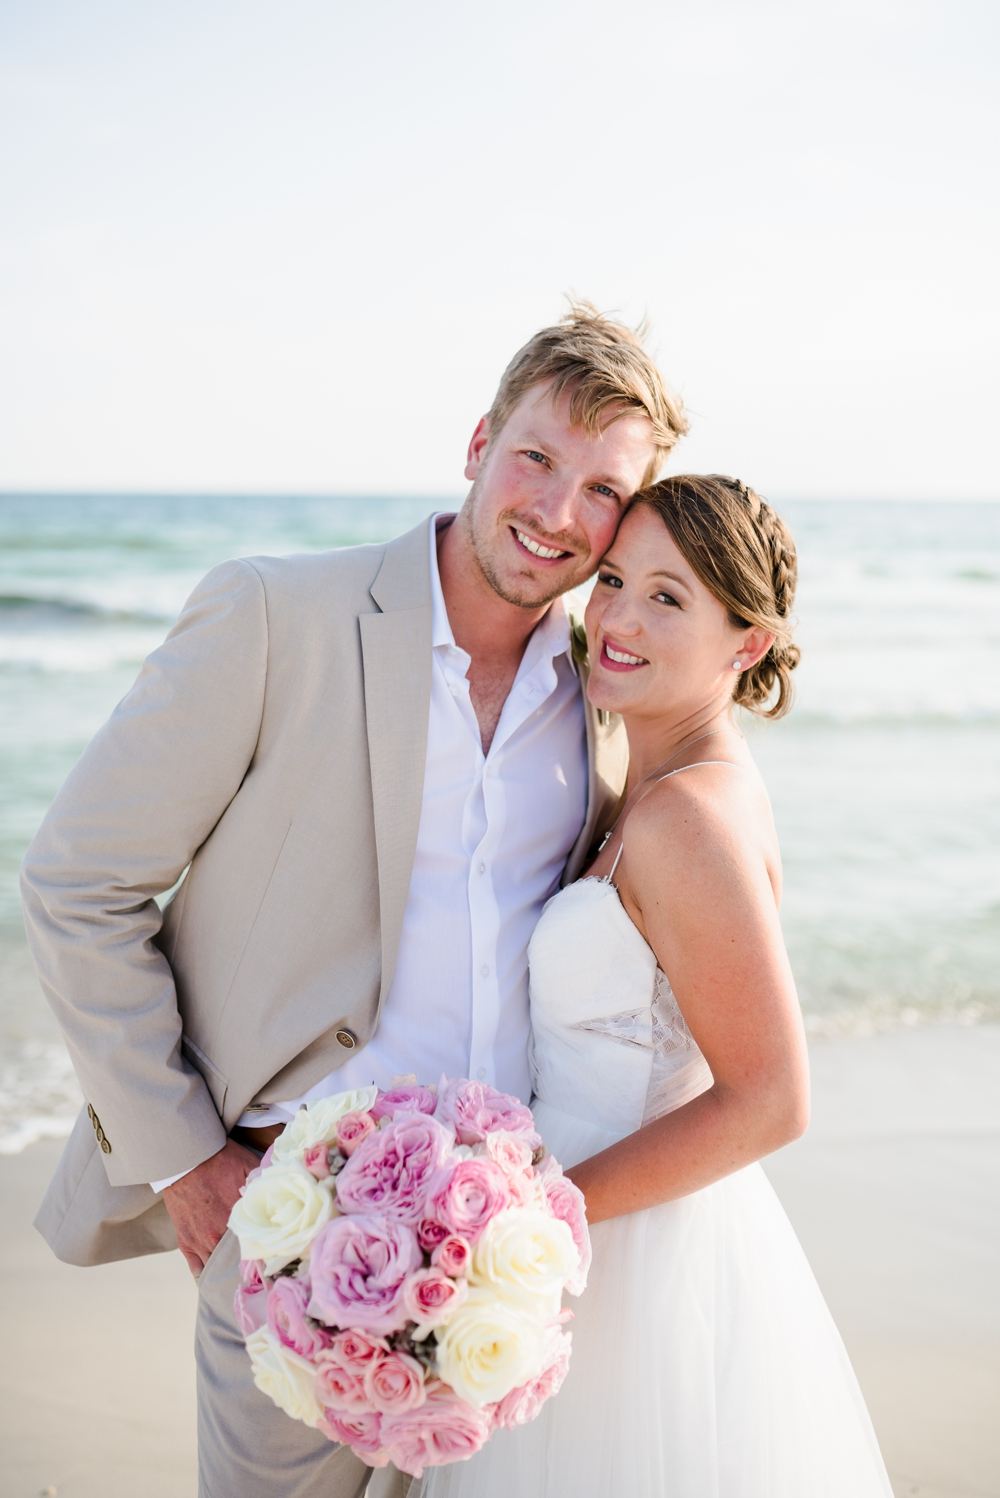 florida-wedding-photographer-kiersten-grant-96.jpg